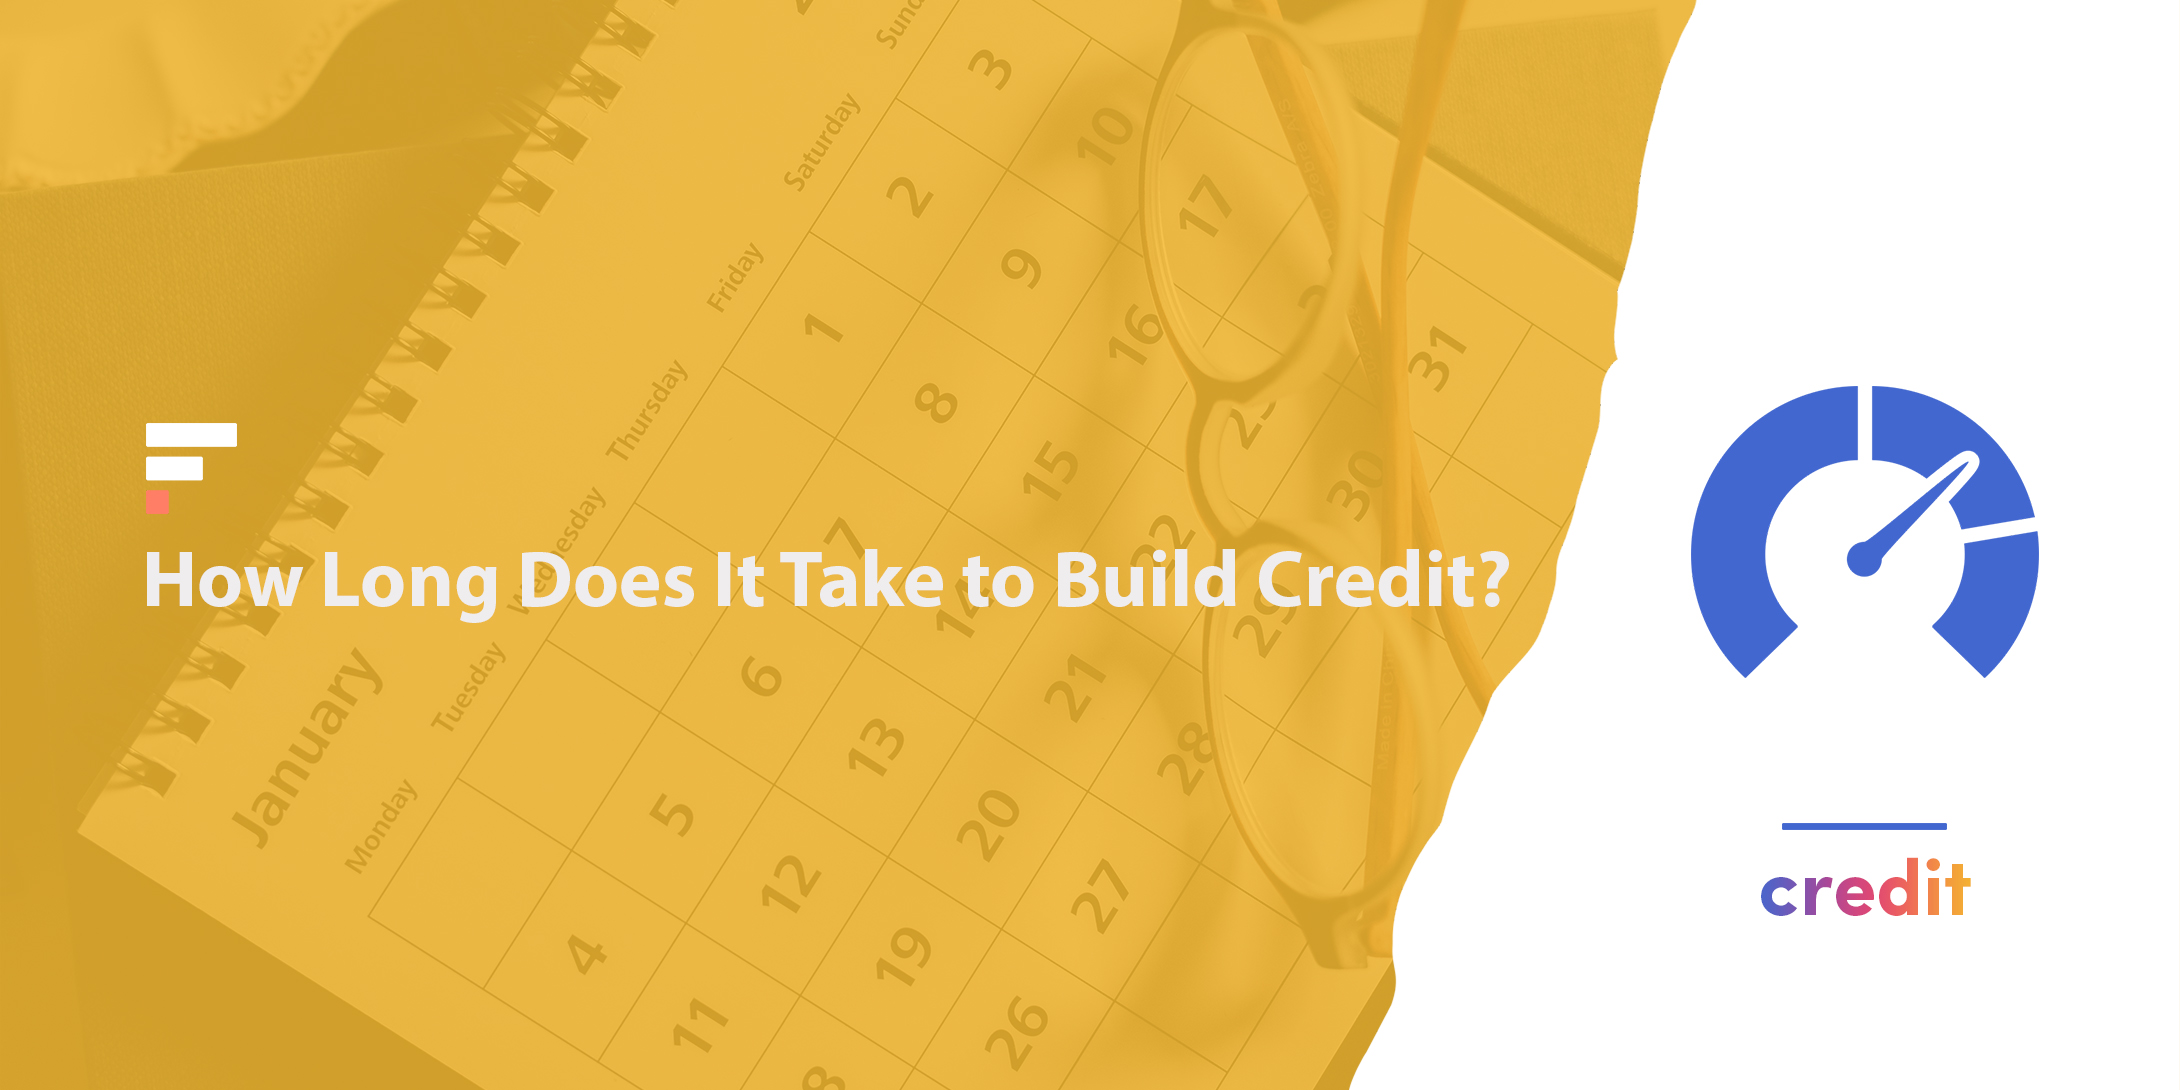 How long does it take to build credit?